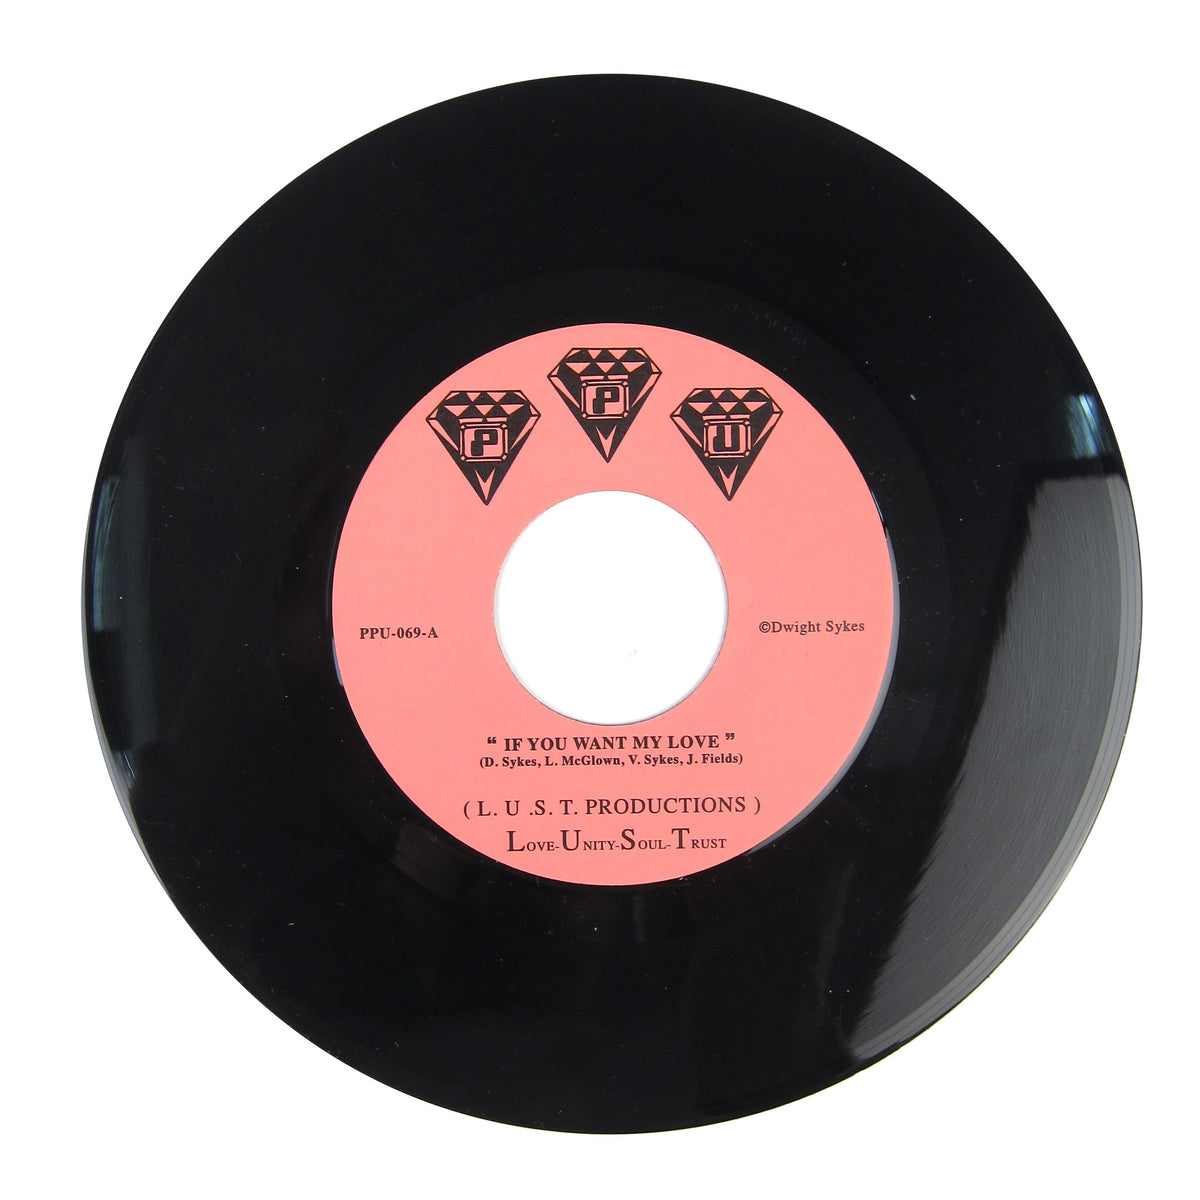 L.U.S.T. Productions: If You Want My Love / You That I Need Vinyl 7""